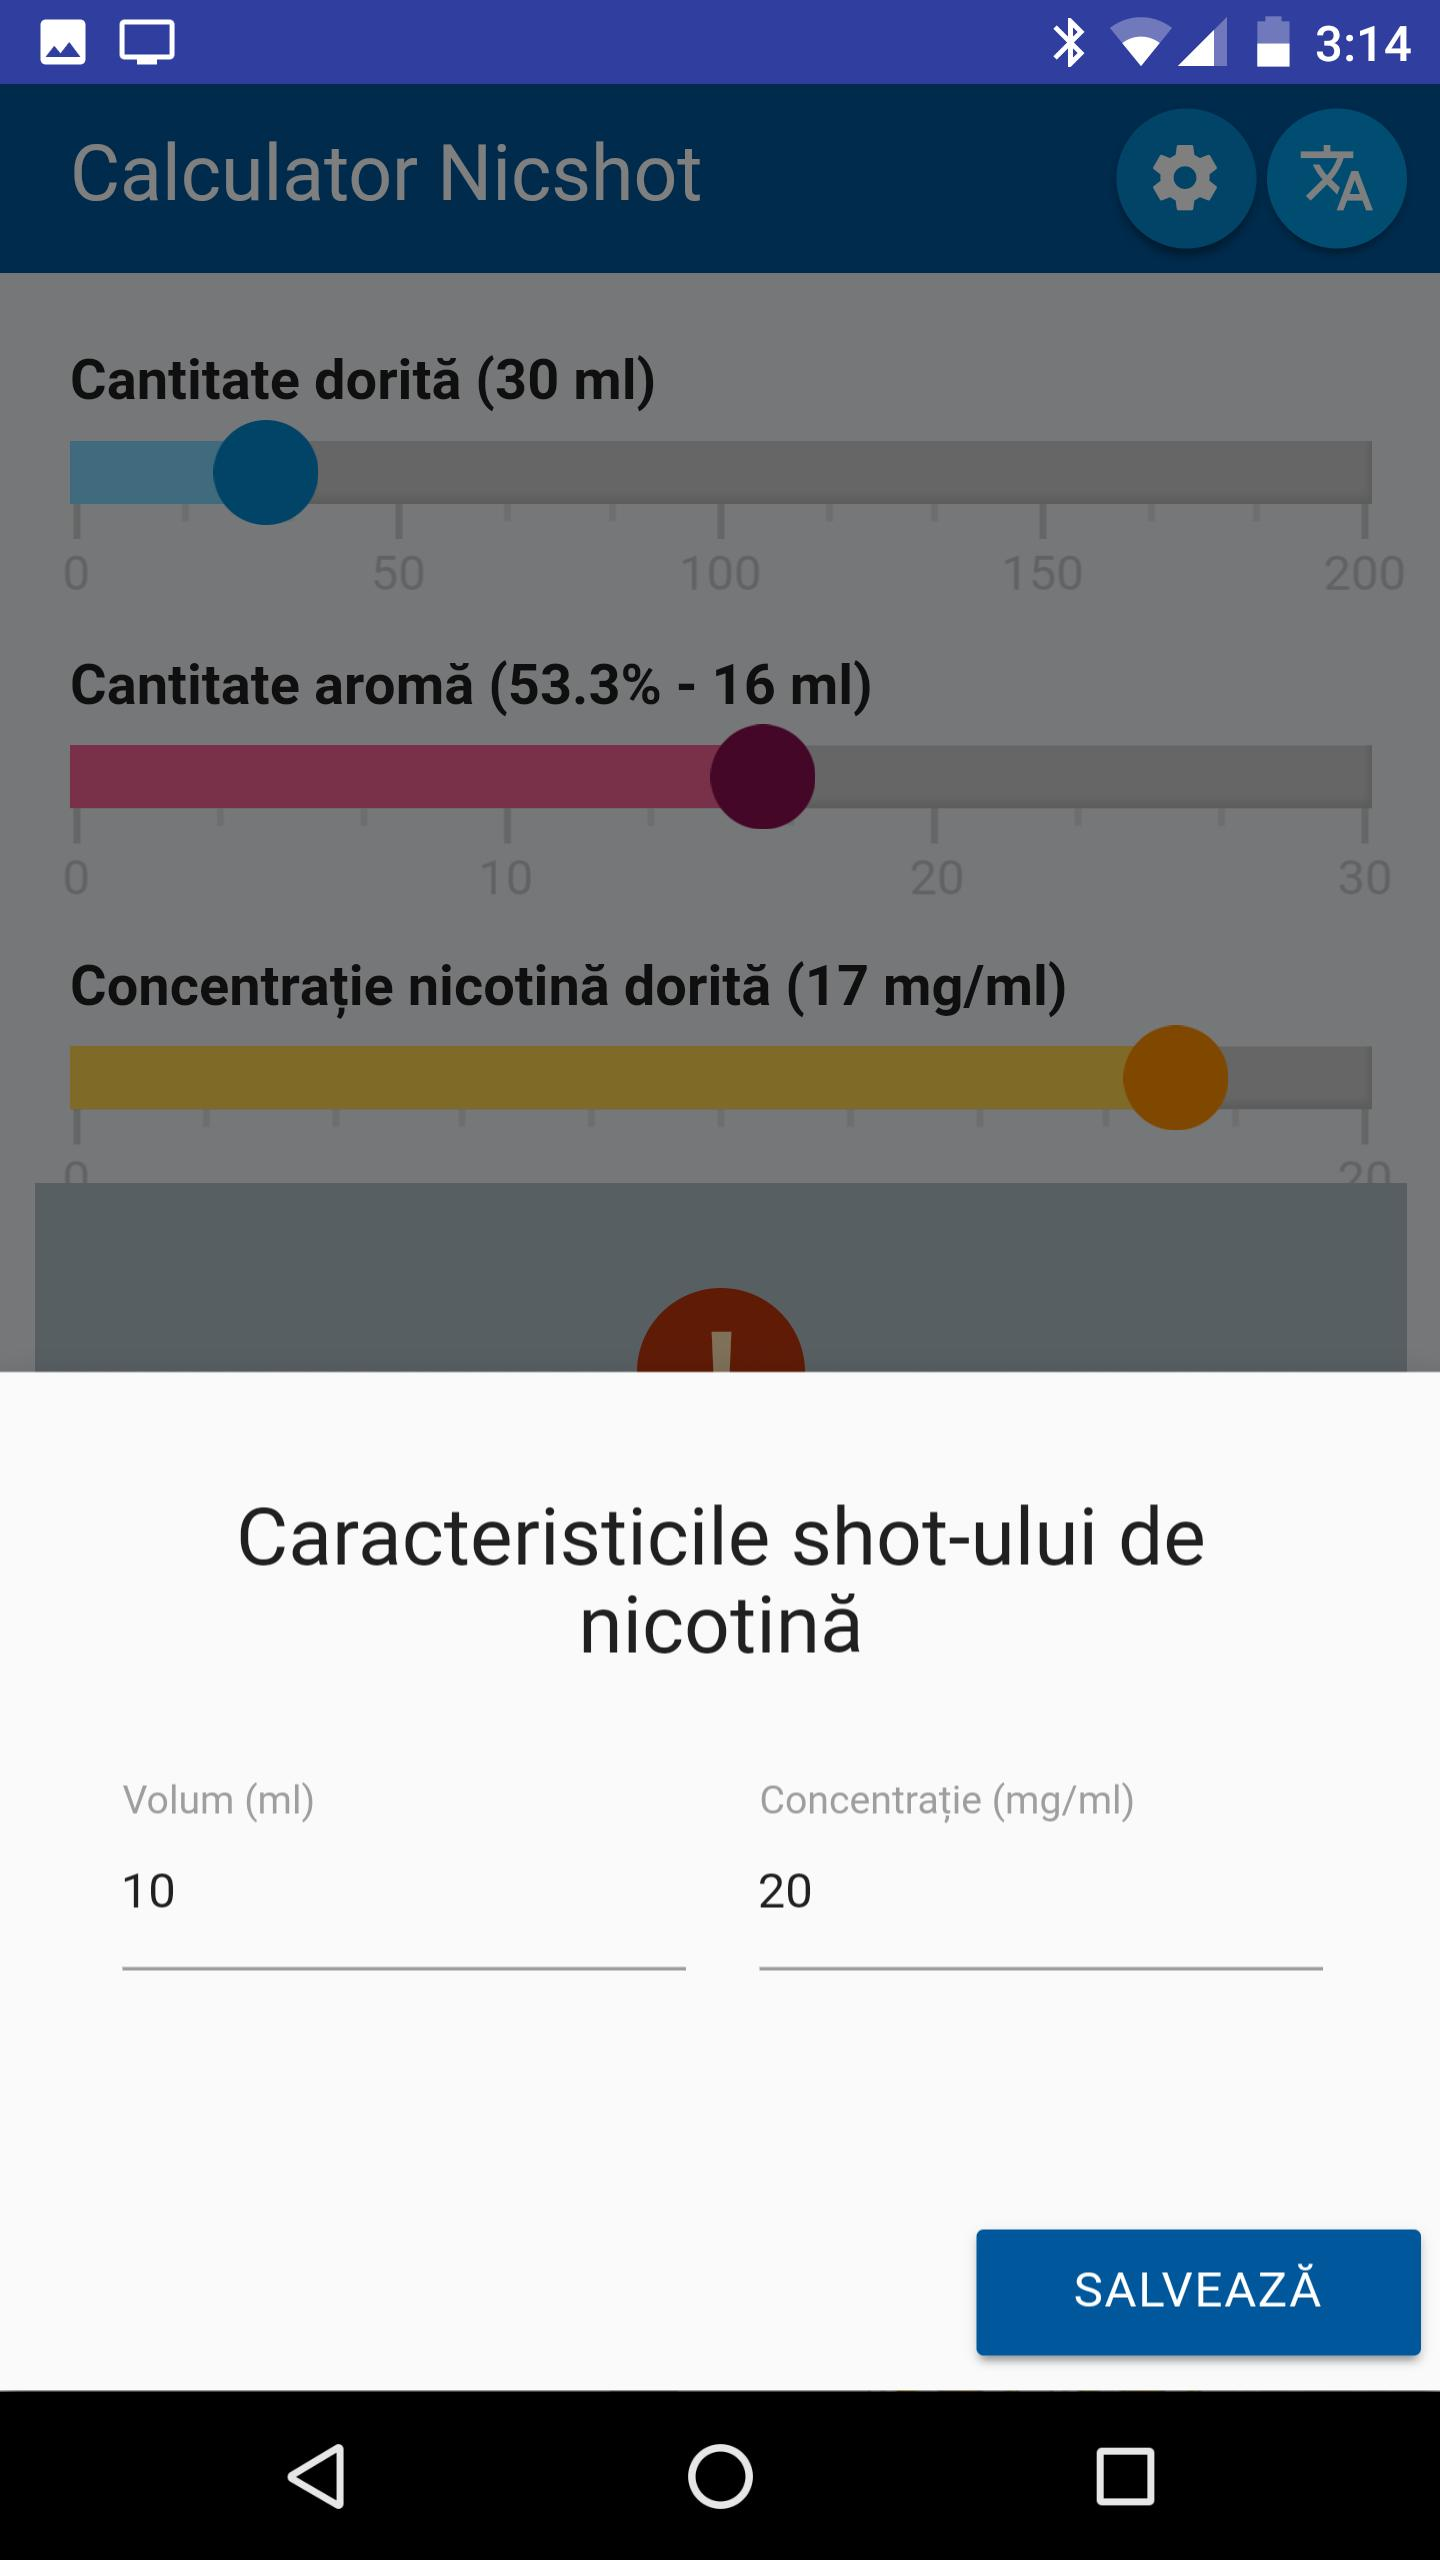 Nicshot Calculator for Android - APK Download